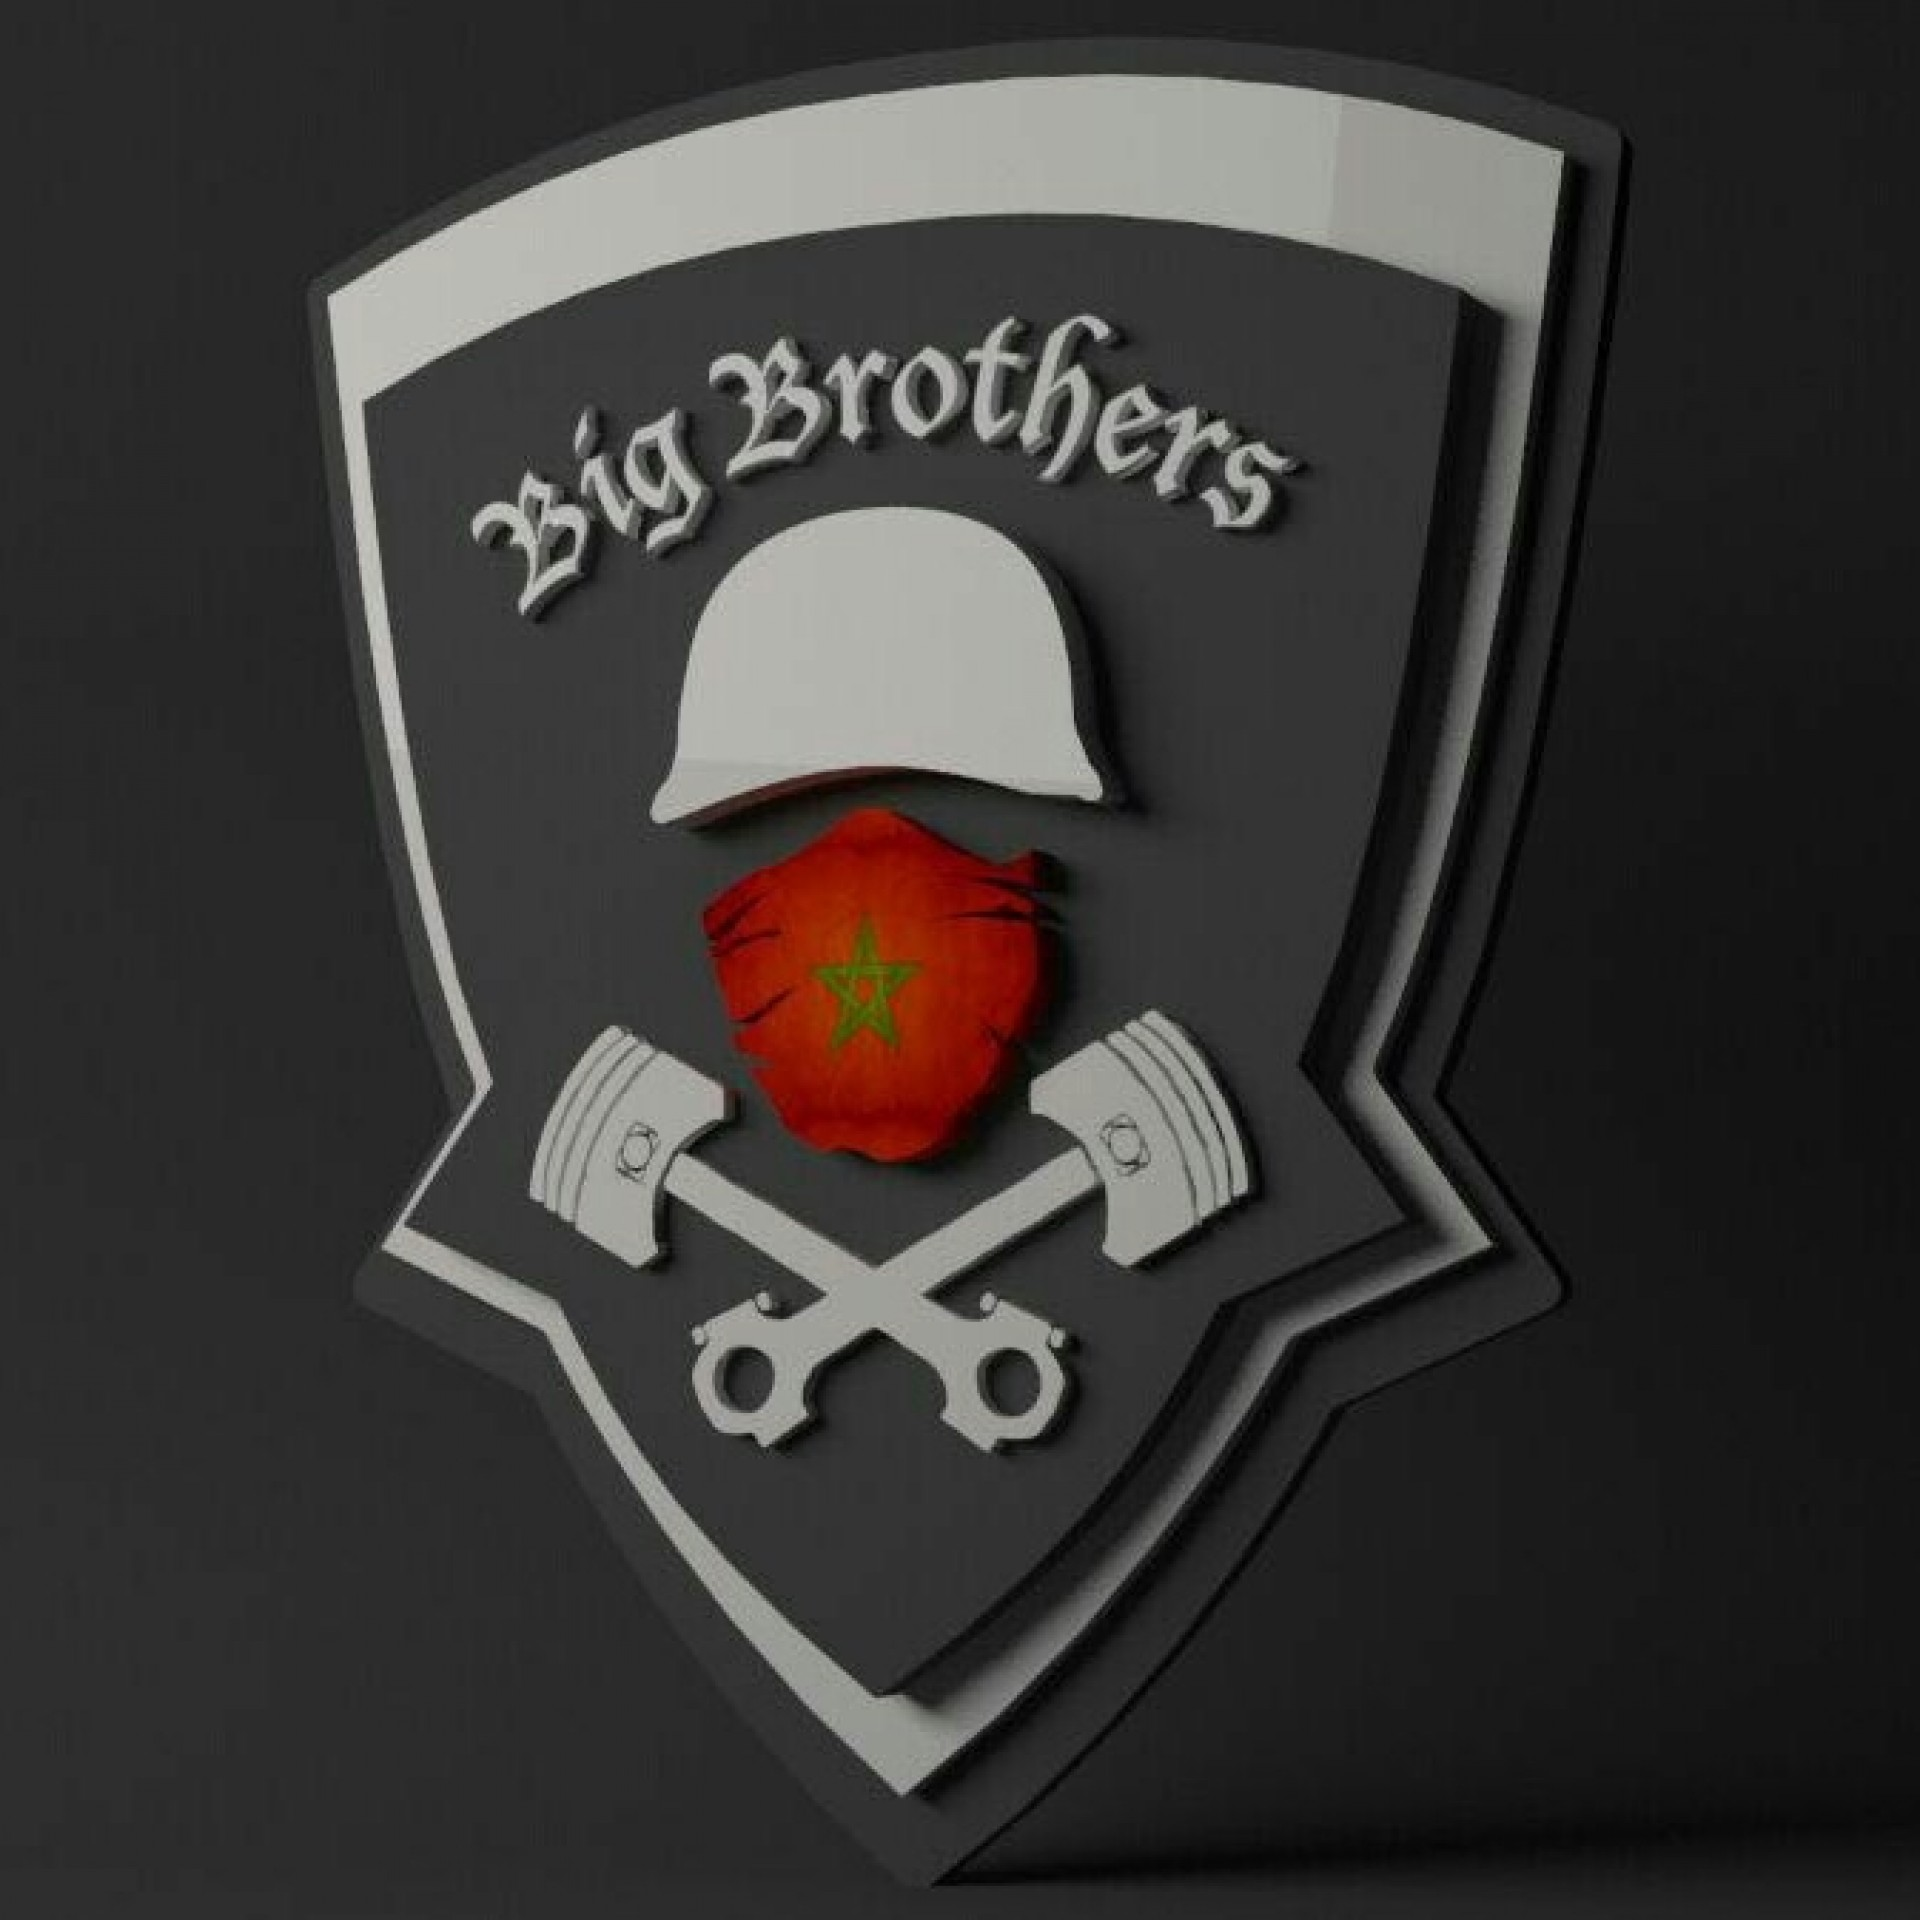 Big Brothers logo